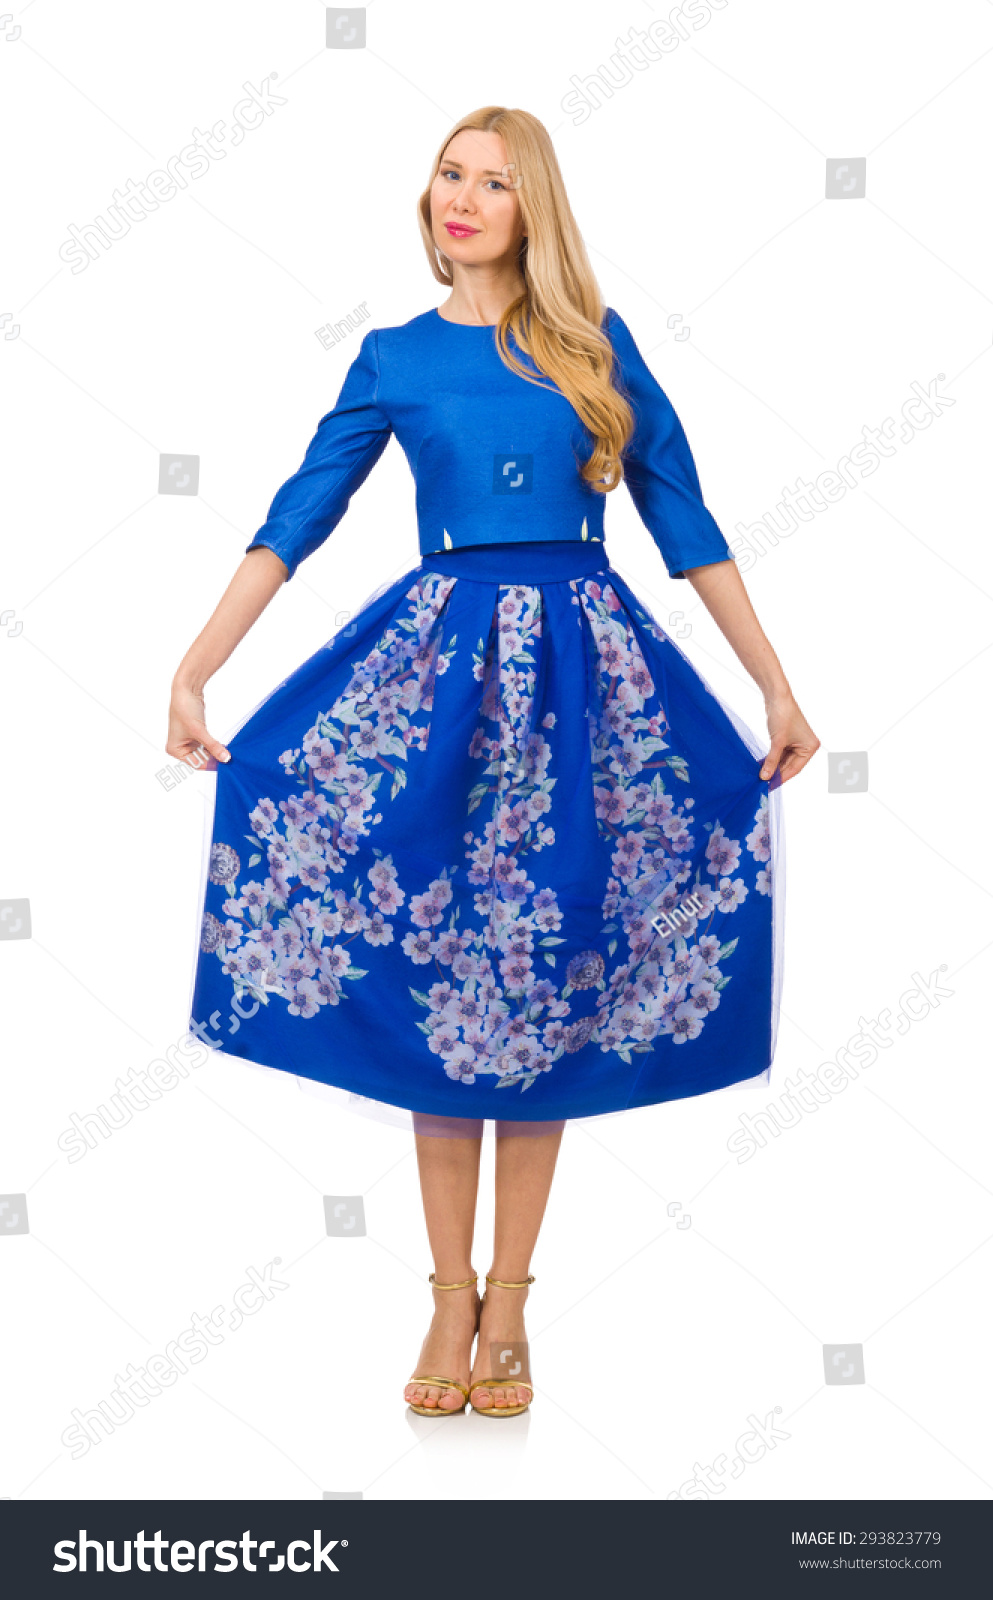 Woman in blue dress with flower prints isolated on white ez canvas id 293823779 izmirmasajfo